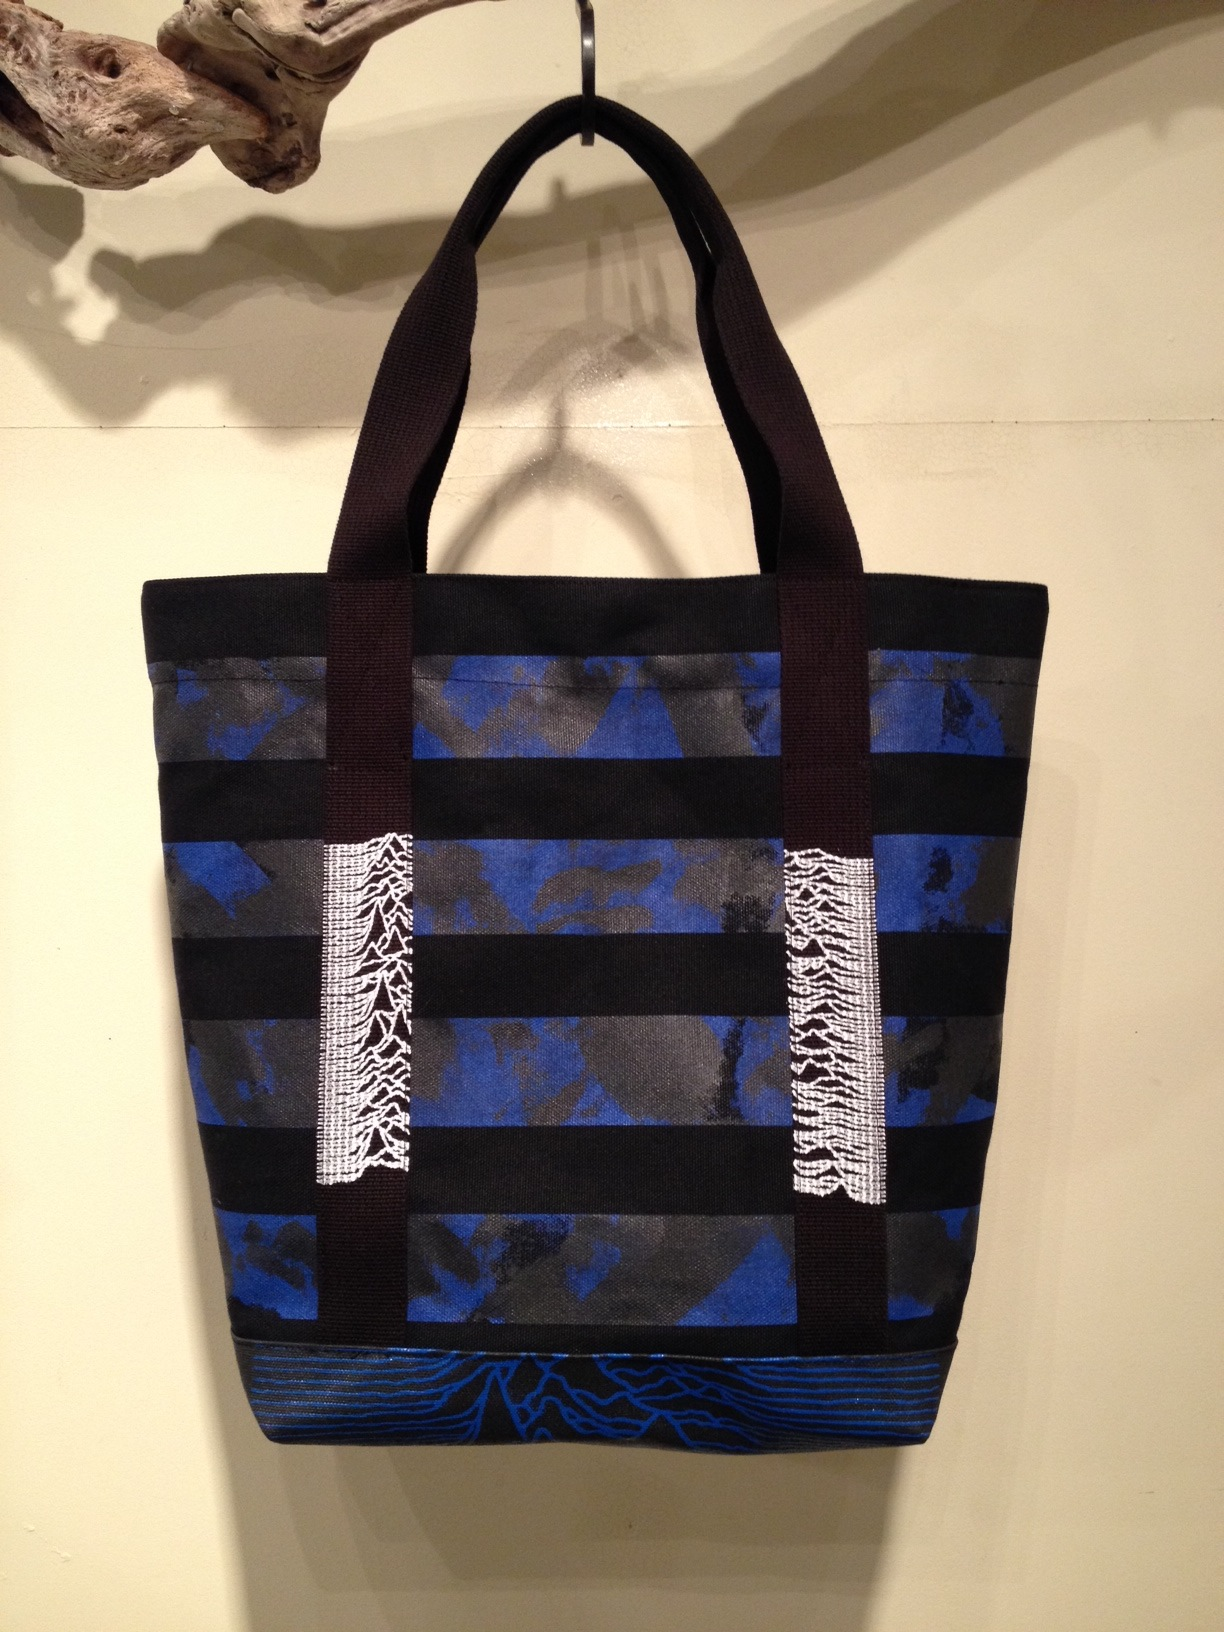 W FACE TOTE BAG_f0126931_15421068.jpg